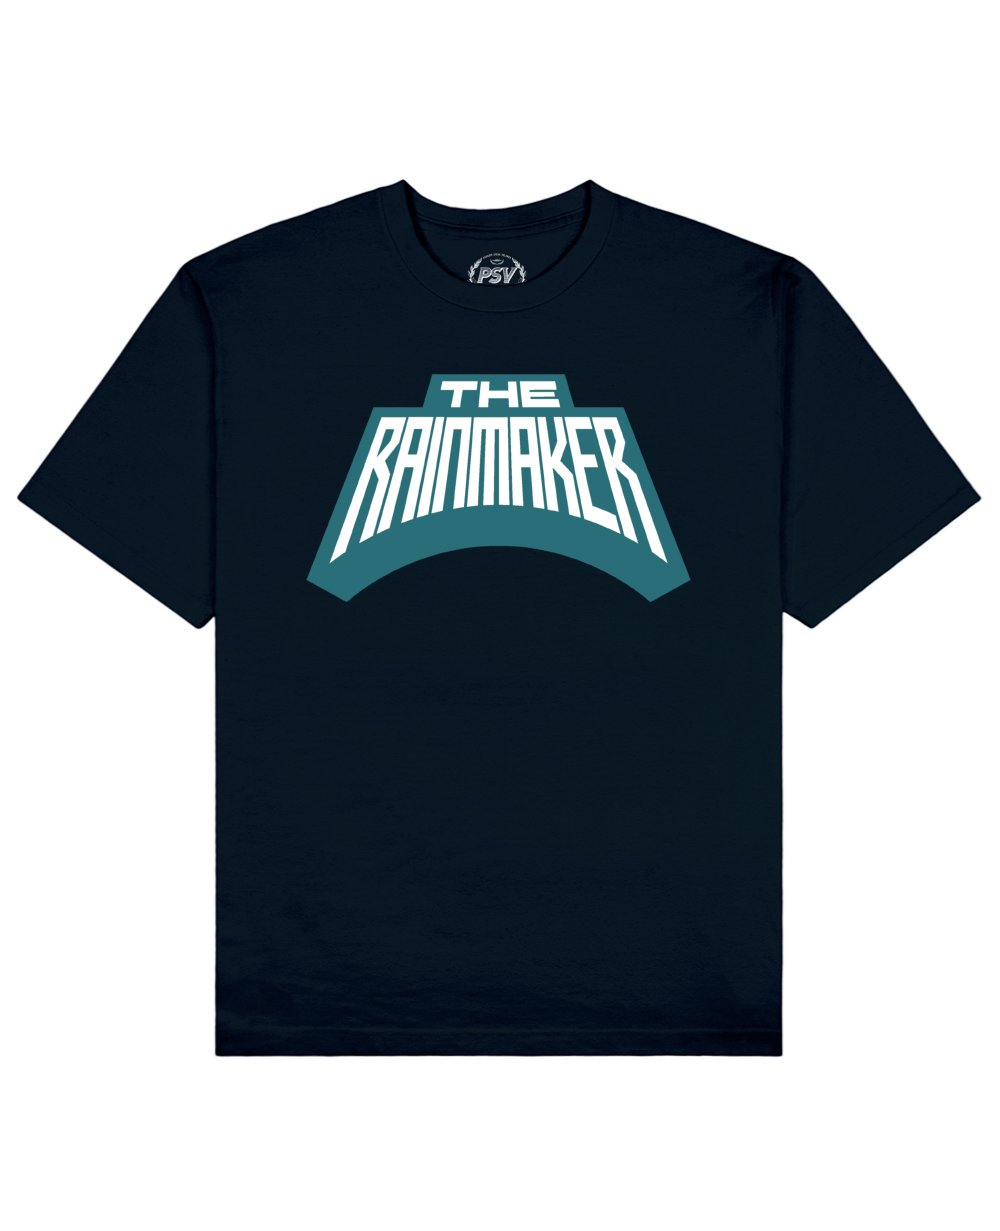 The Rainmaker Print T-Shirt in Navy - T-Shirts - PSV - BRANMA